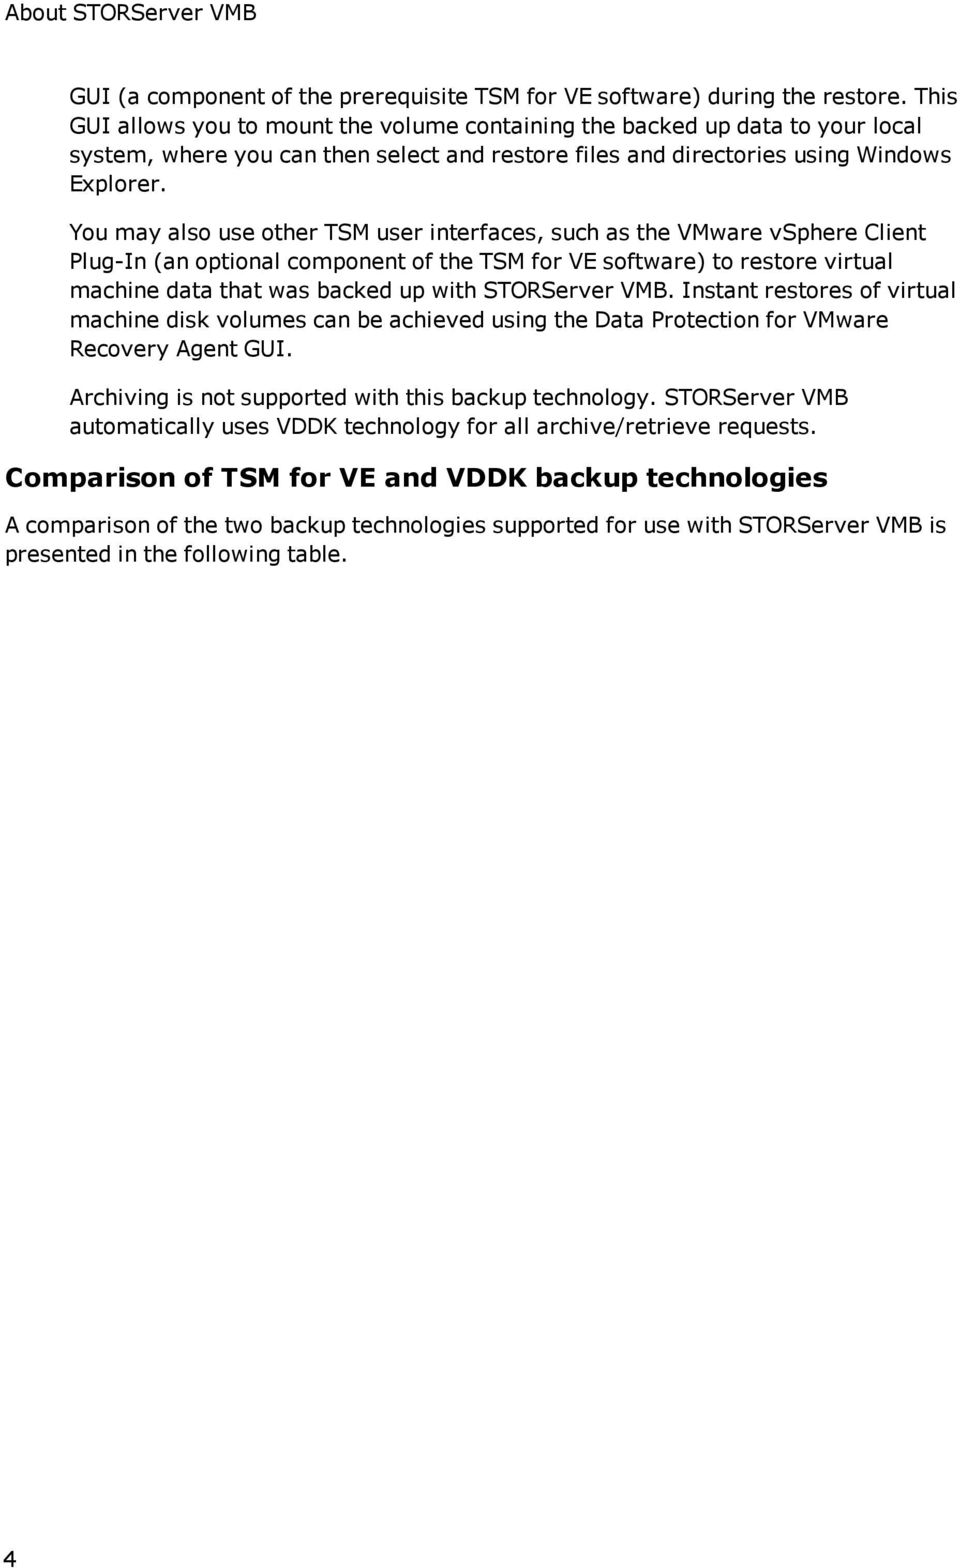 You may also use other TSM user interfaces, such as the VMware vsphere Client Plug-In (an optional component of the TSM for VE software) to restore virtual machine data that was backed up with